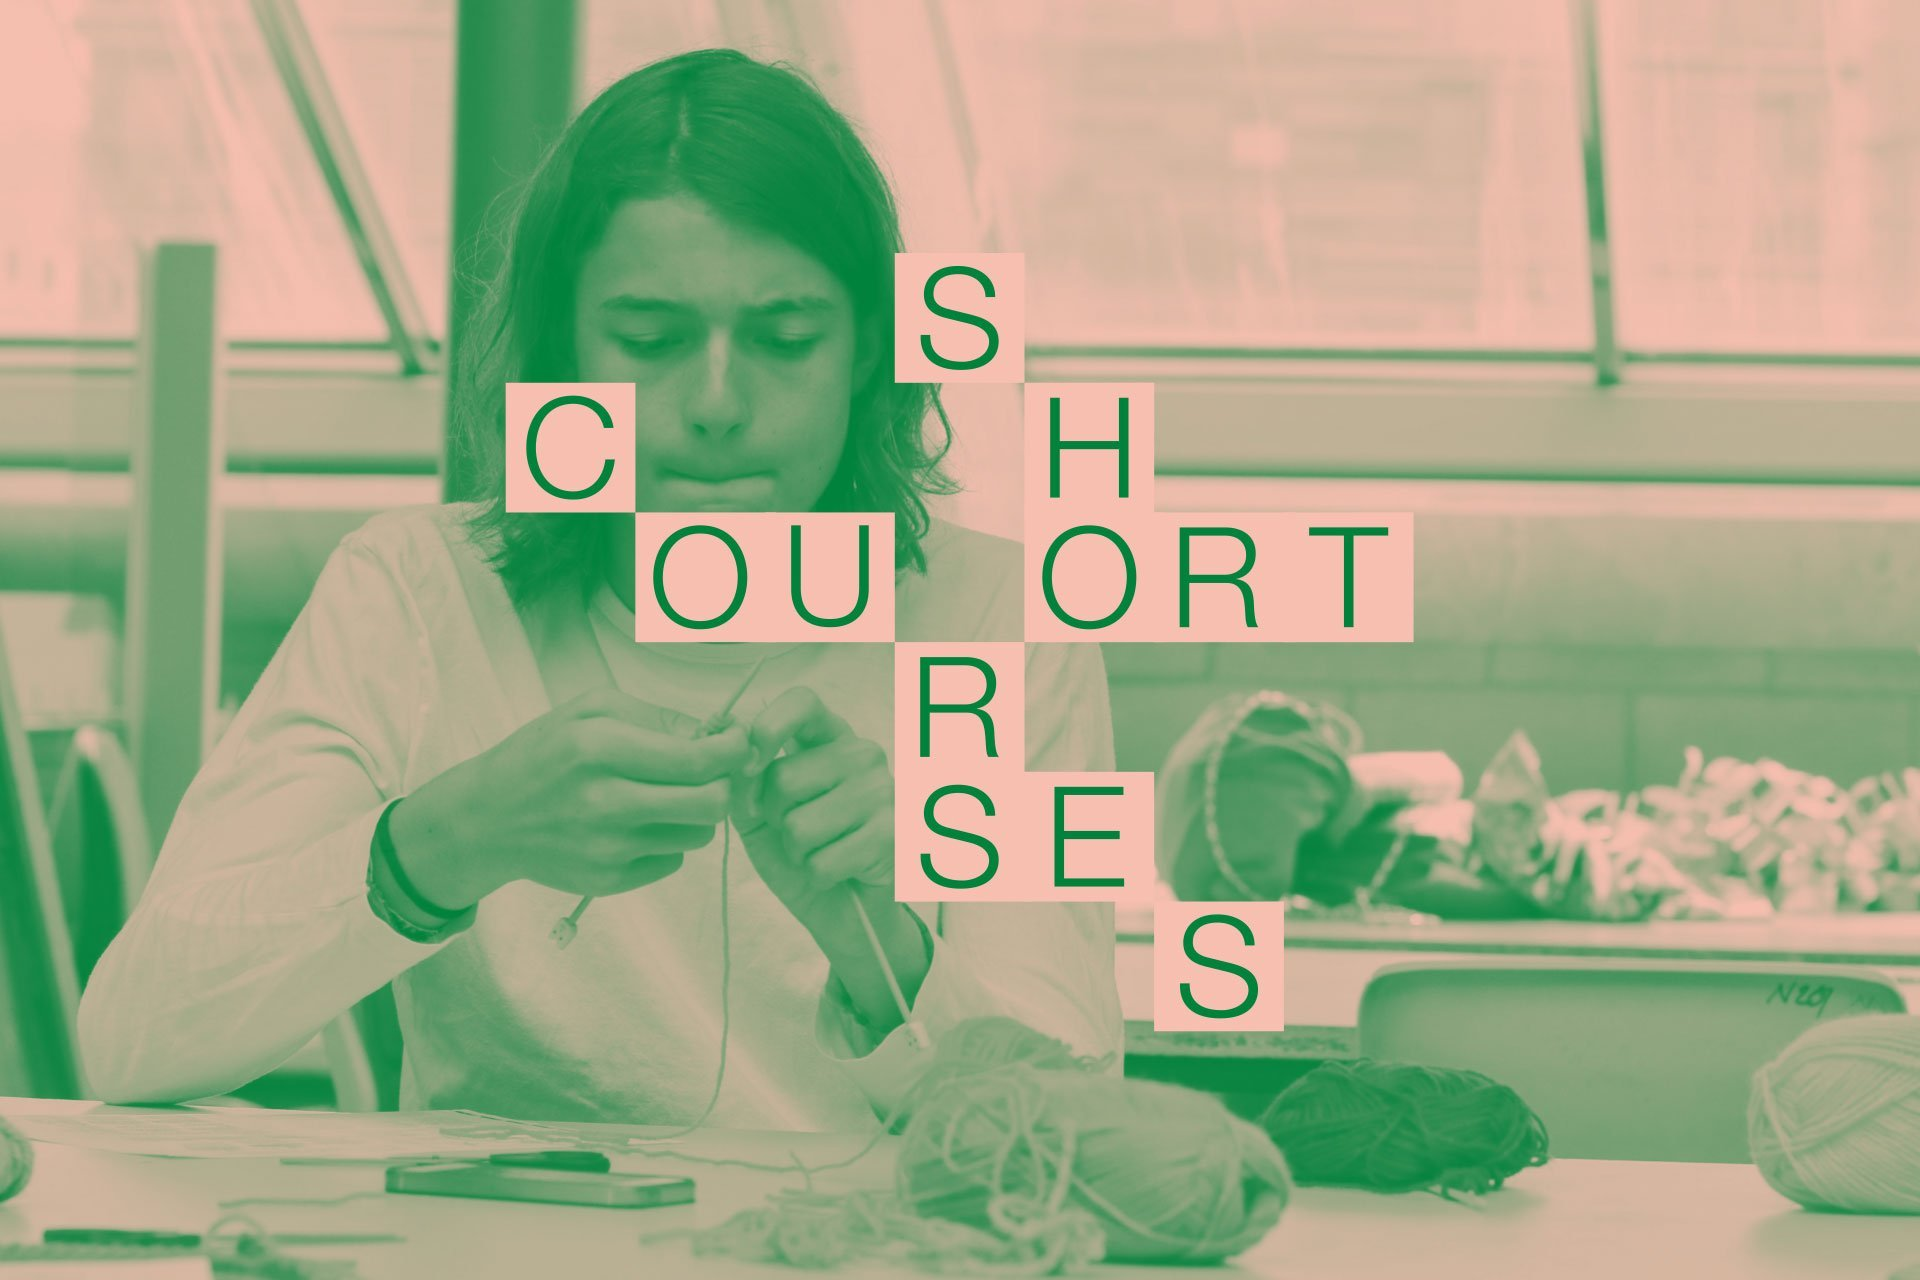 CSM Short Courses 17